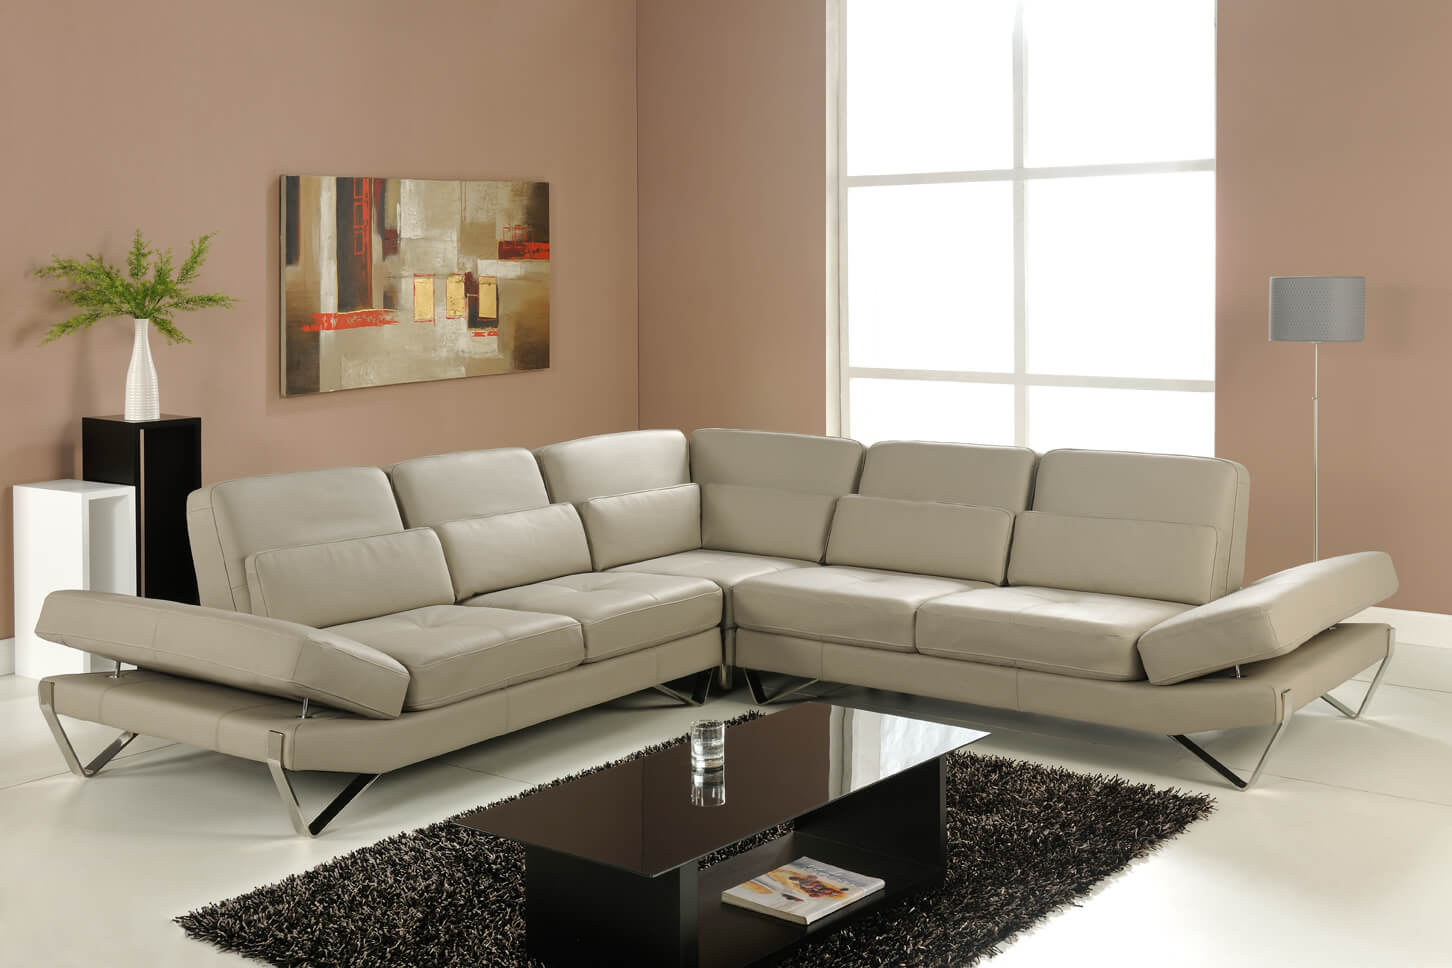 bianca sectional sofa costco chaise lounge grey by at home usa